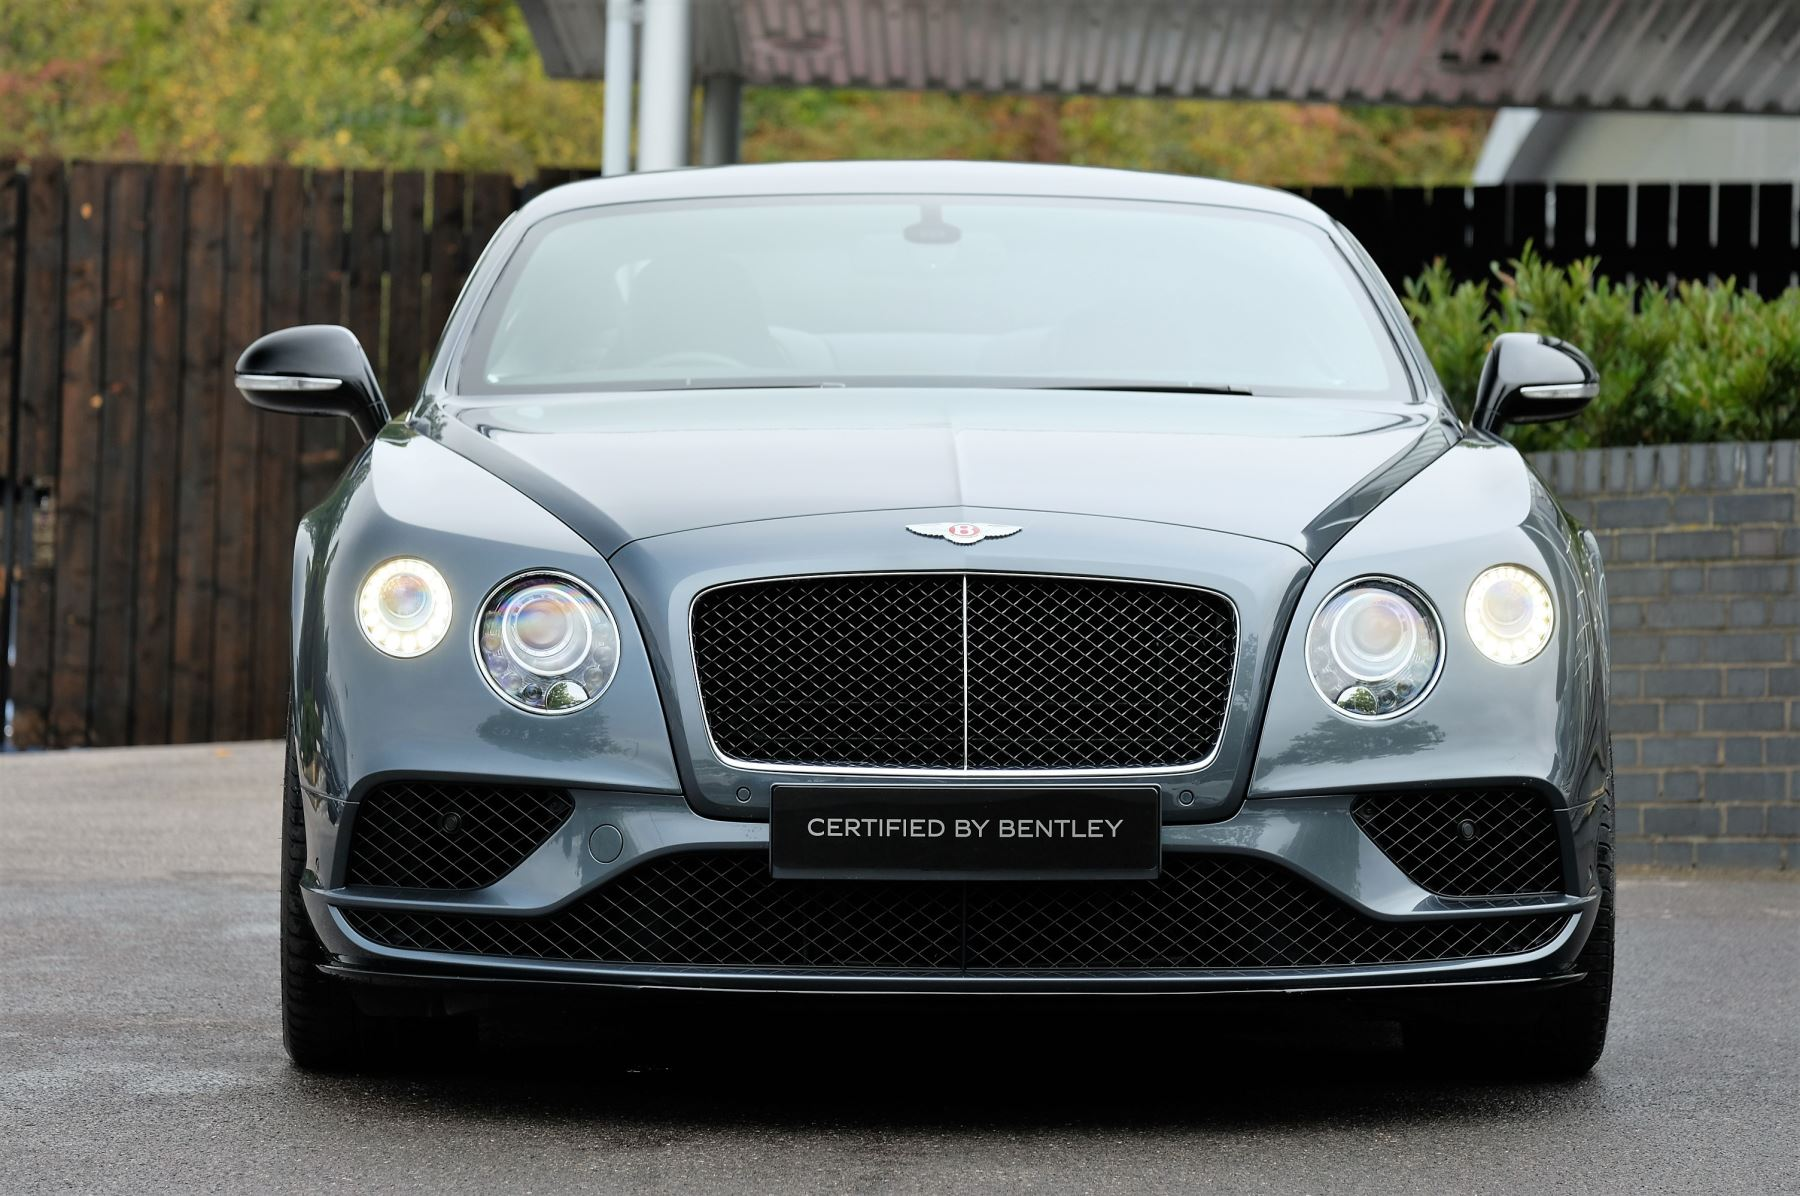 Bentley Continental GT 0.0 4.0 V8 S Mulliner Driving Spec 2dr